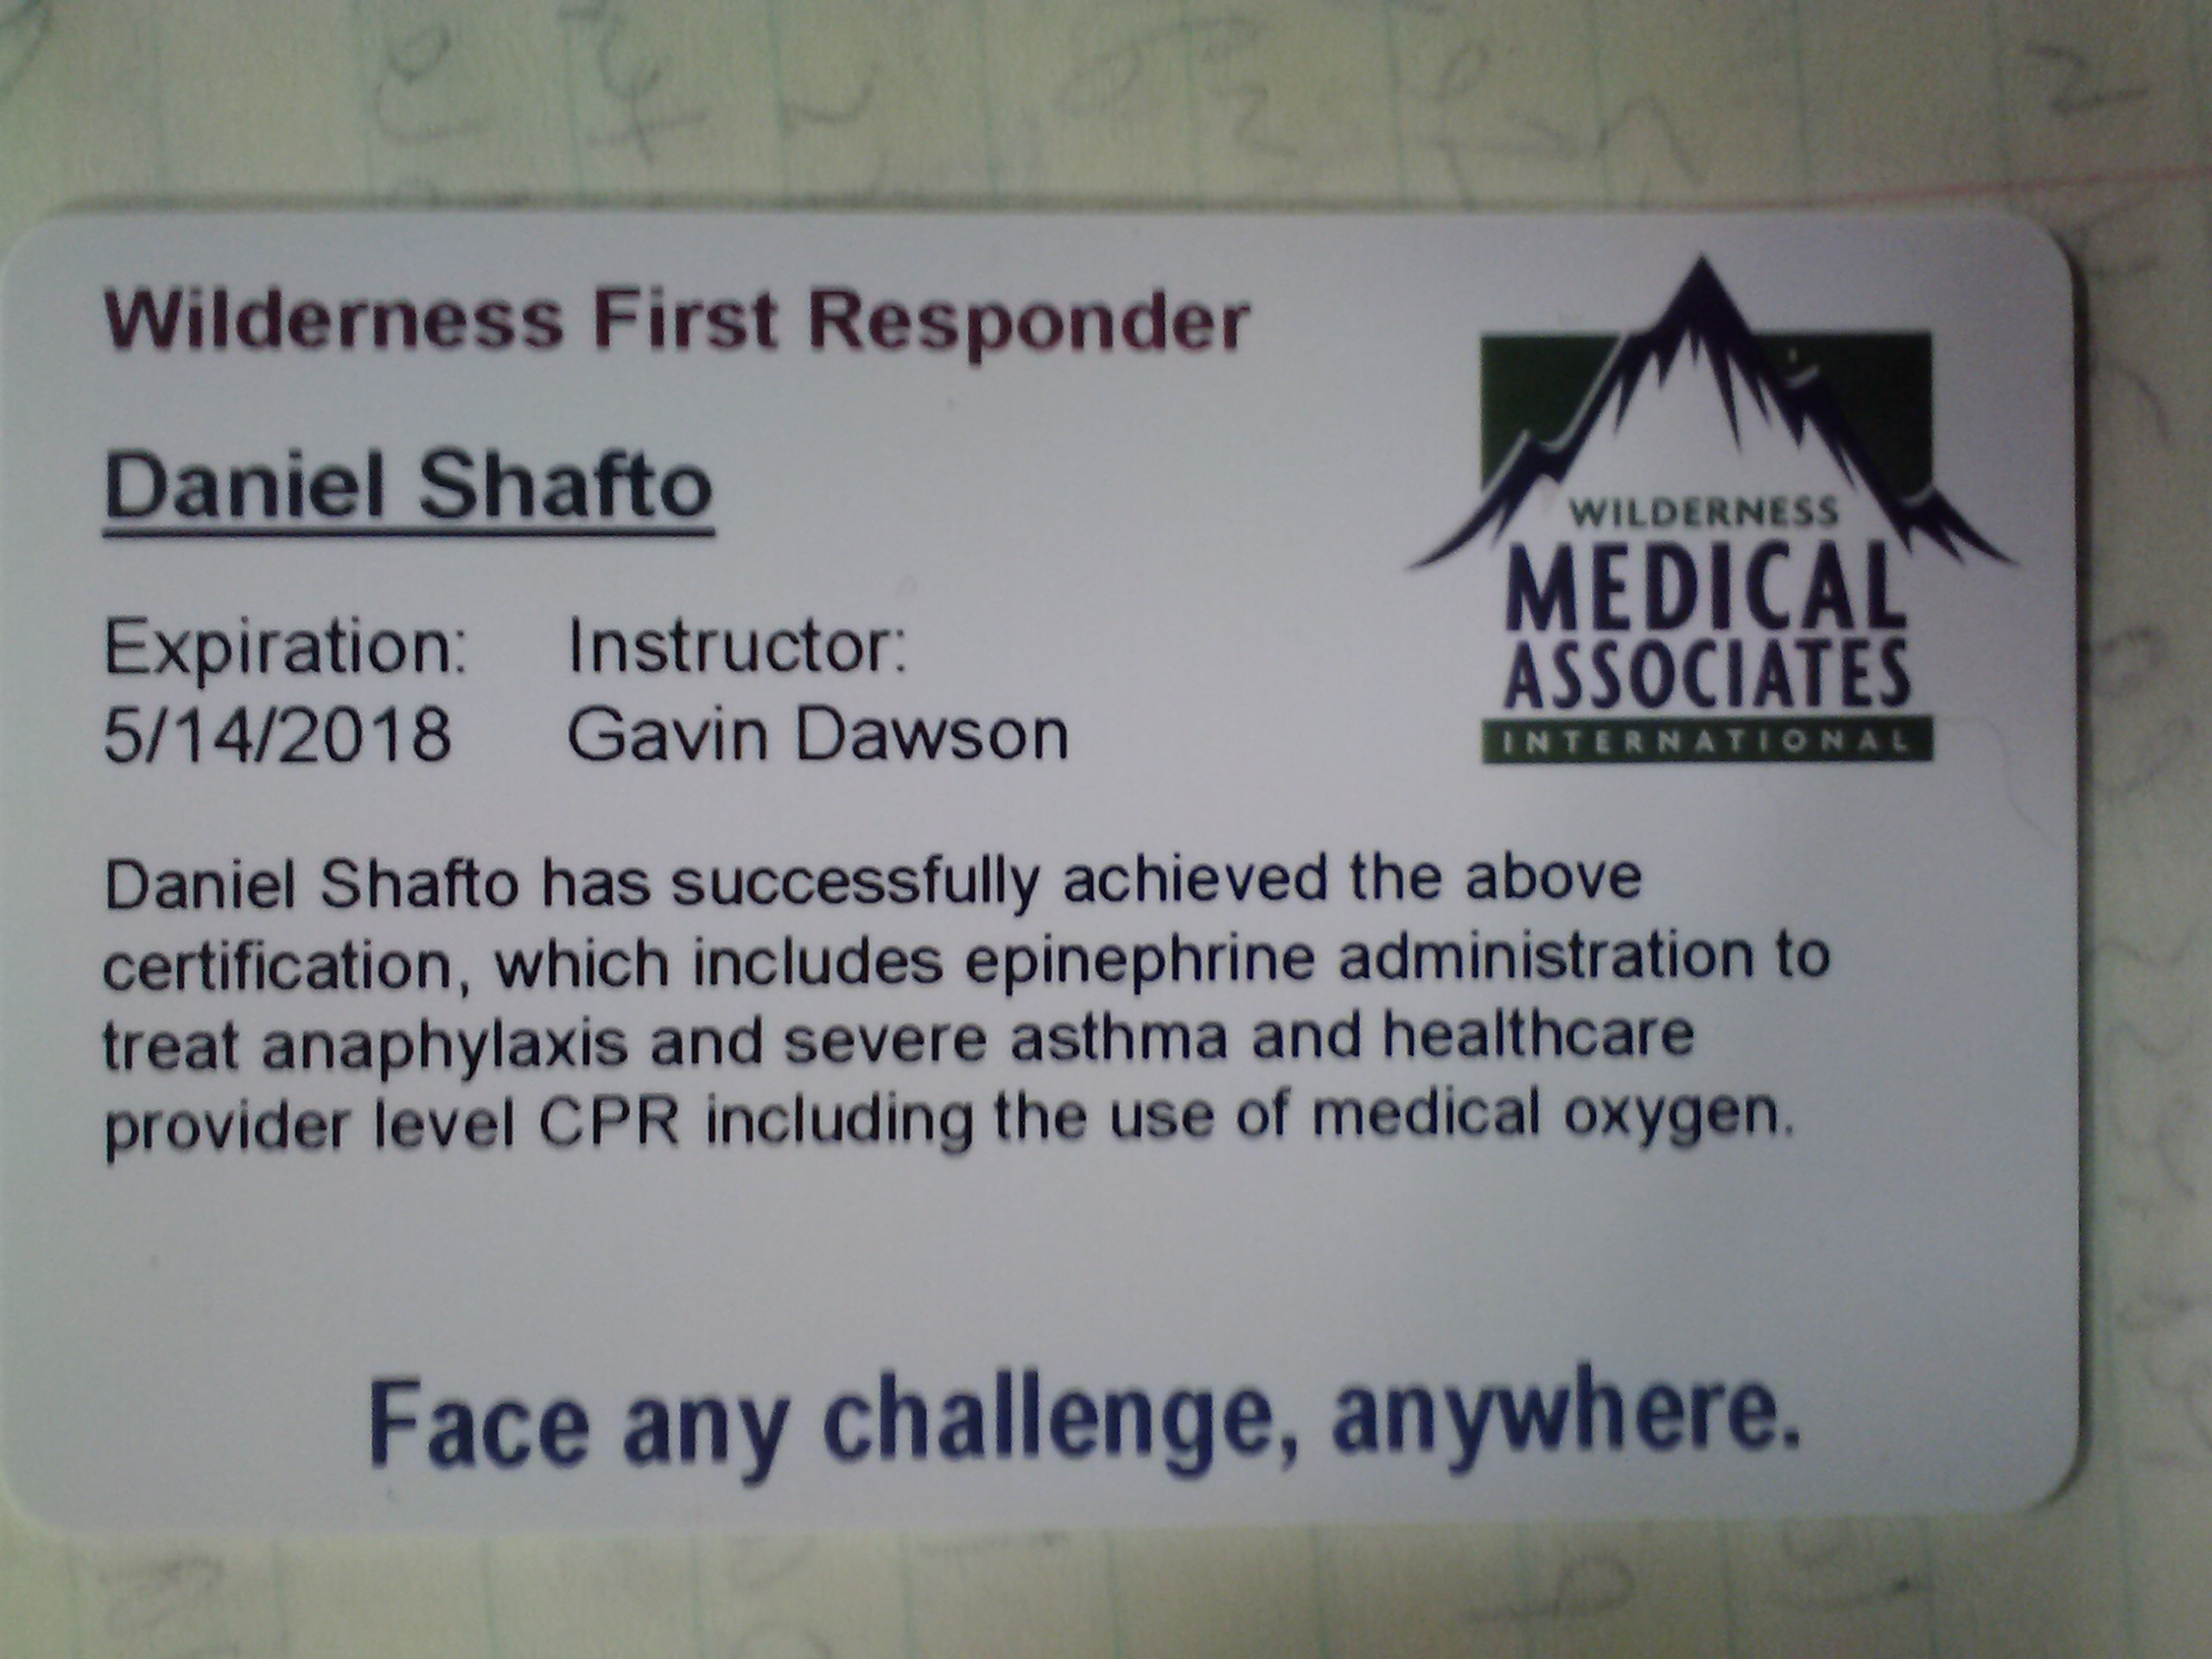 Fitpacking guide dan shafto dan lives in marshfield ma and and is a wilderness medical associates certified wilderness first responder and an american red cross cpraed xflitez Image collections